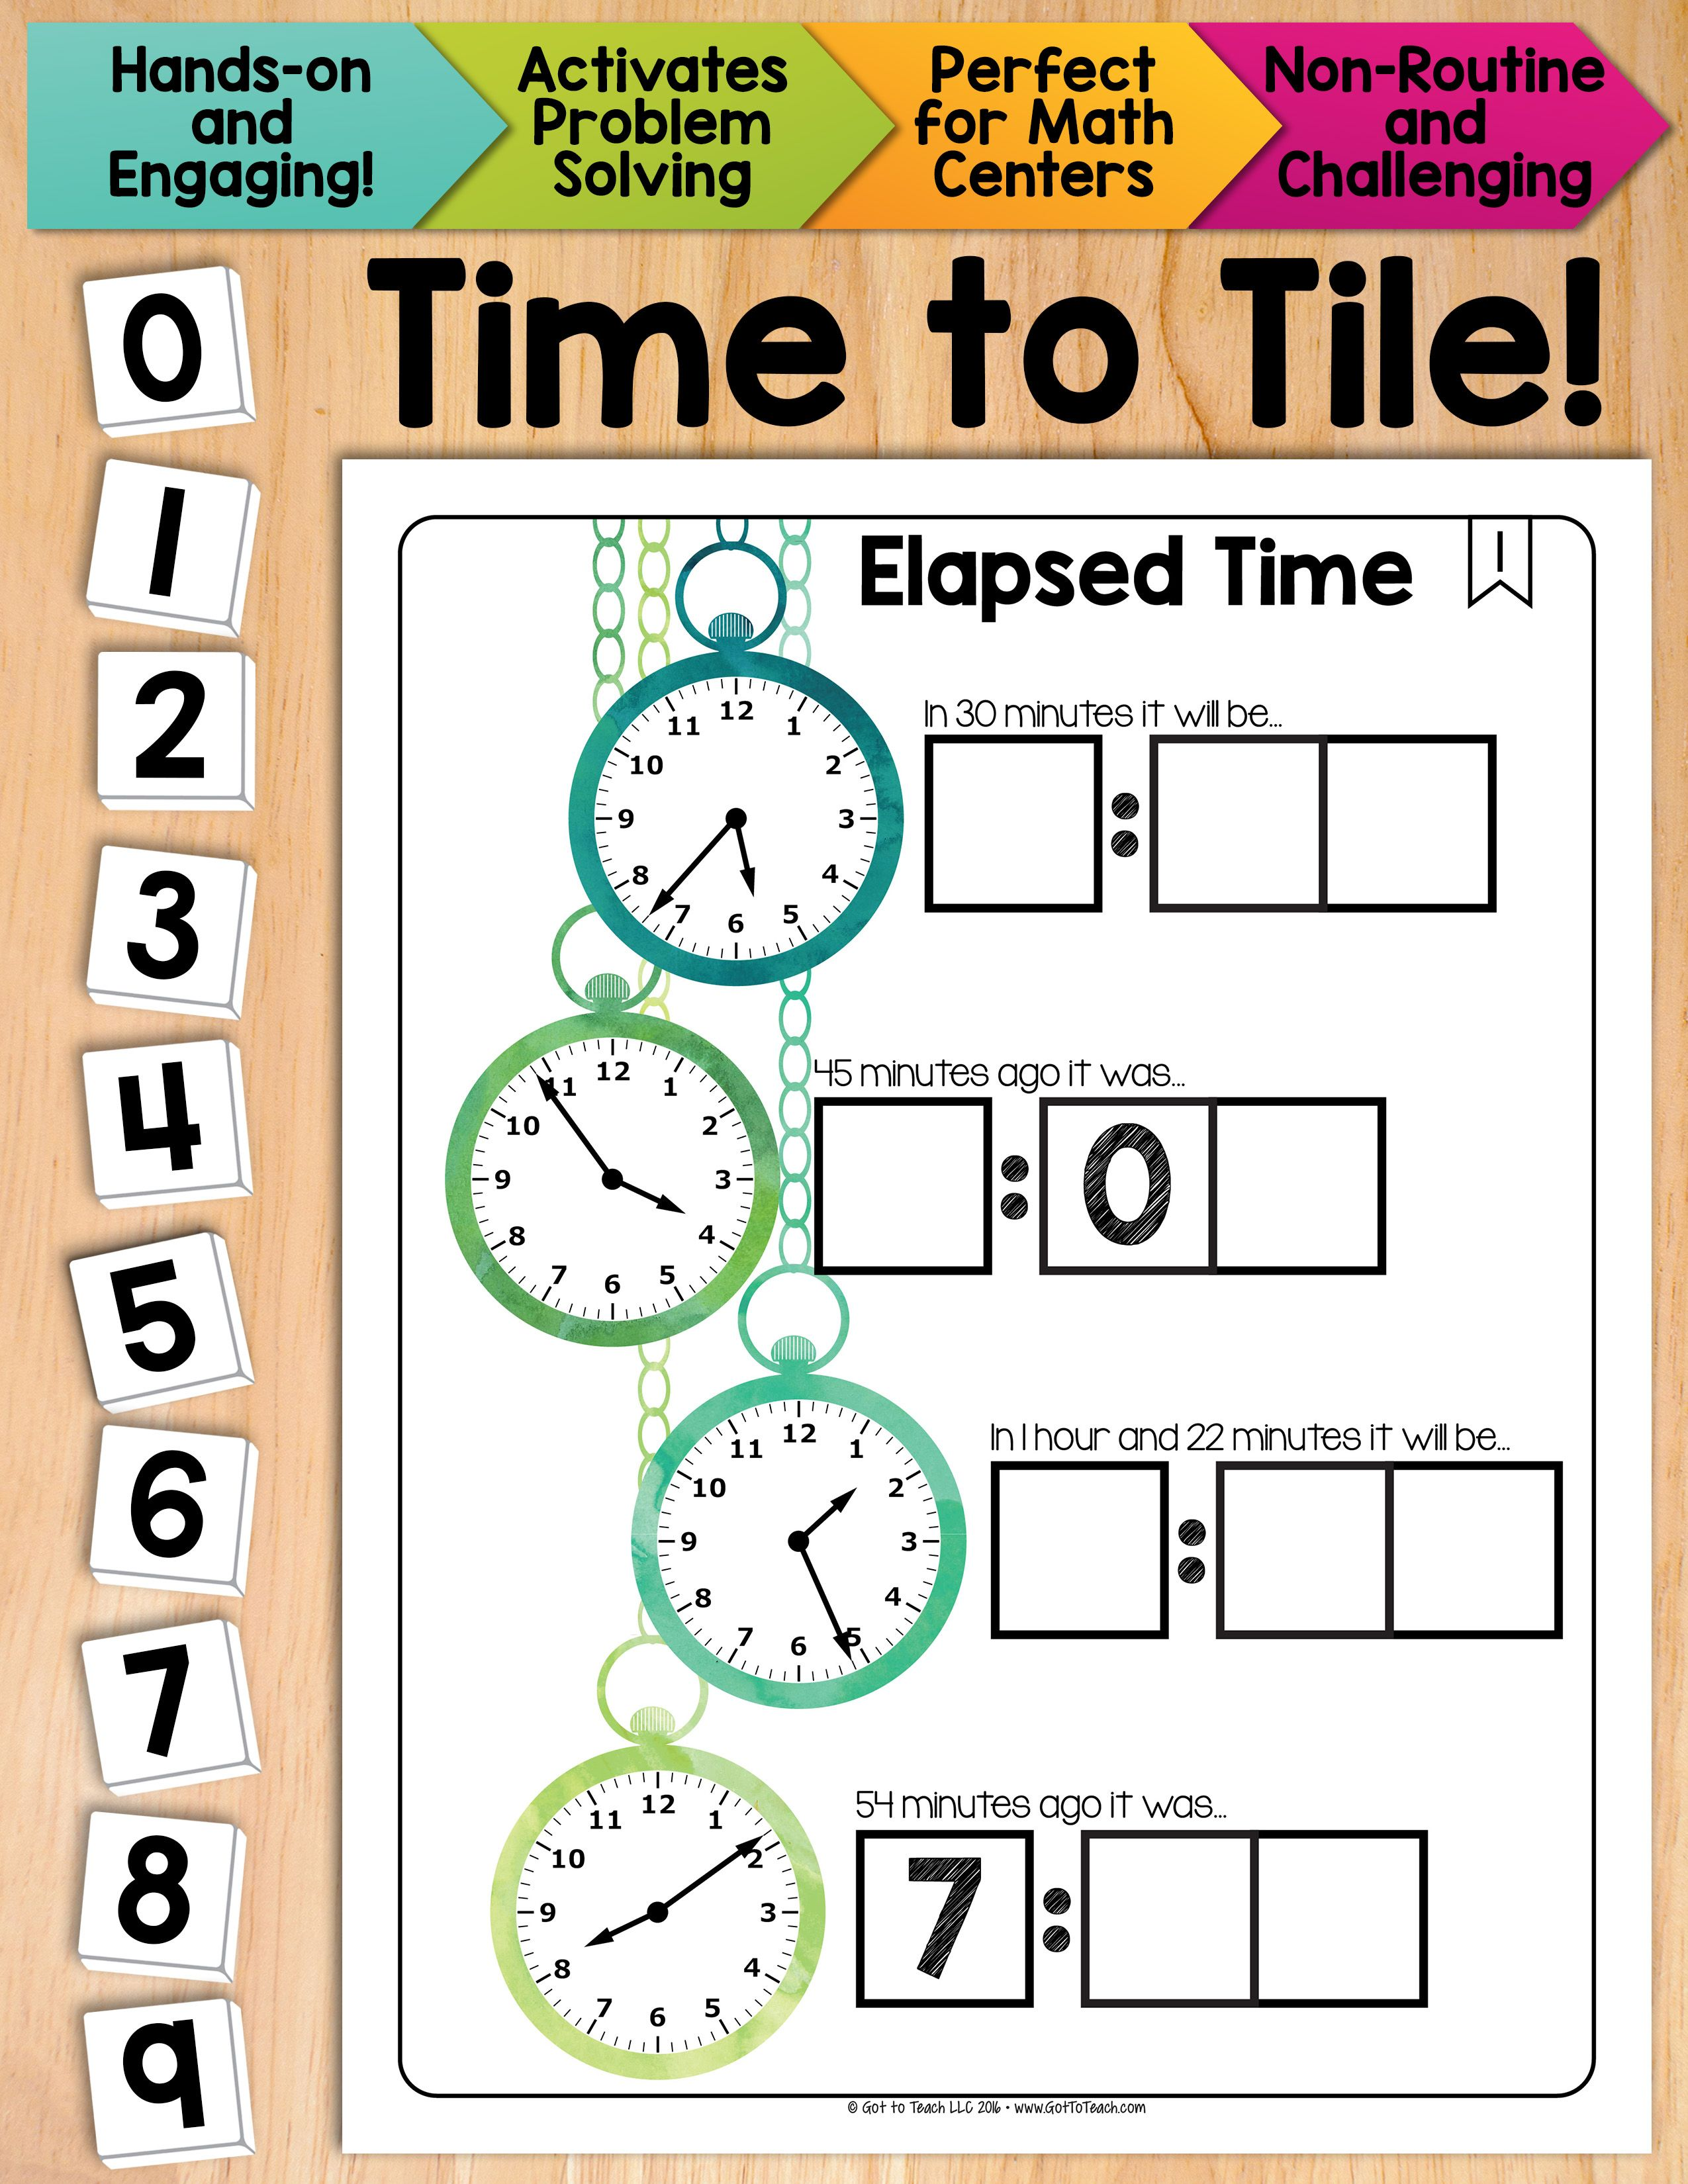 Worksheet Rote Math math tiles elapsed time centers problem solving the o reinforce concept of with hands on a fun and